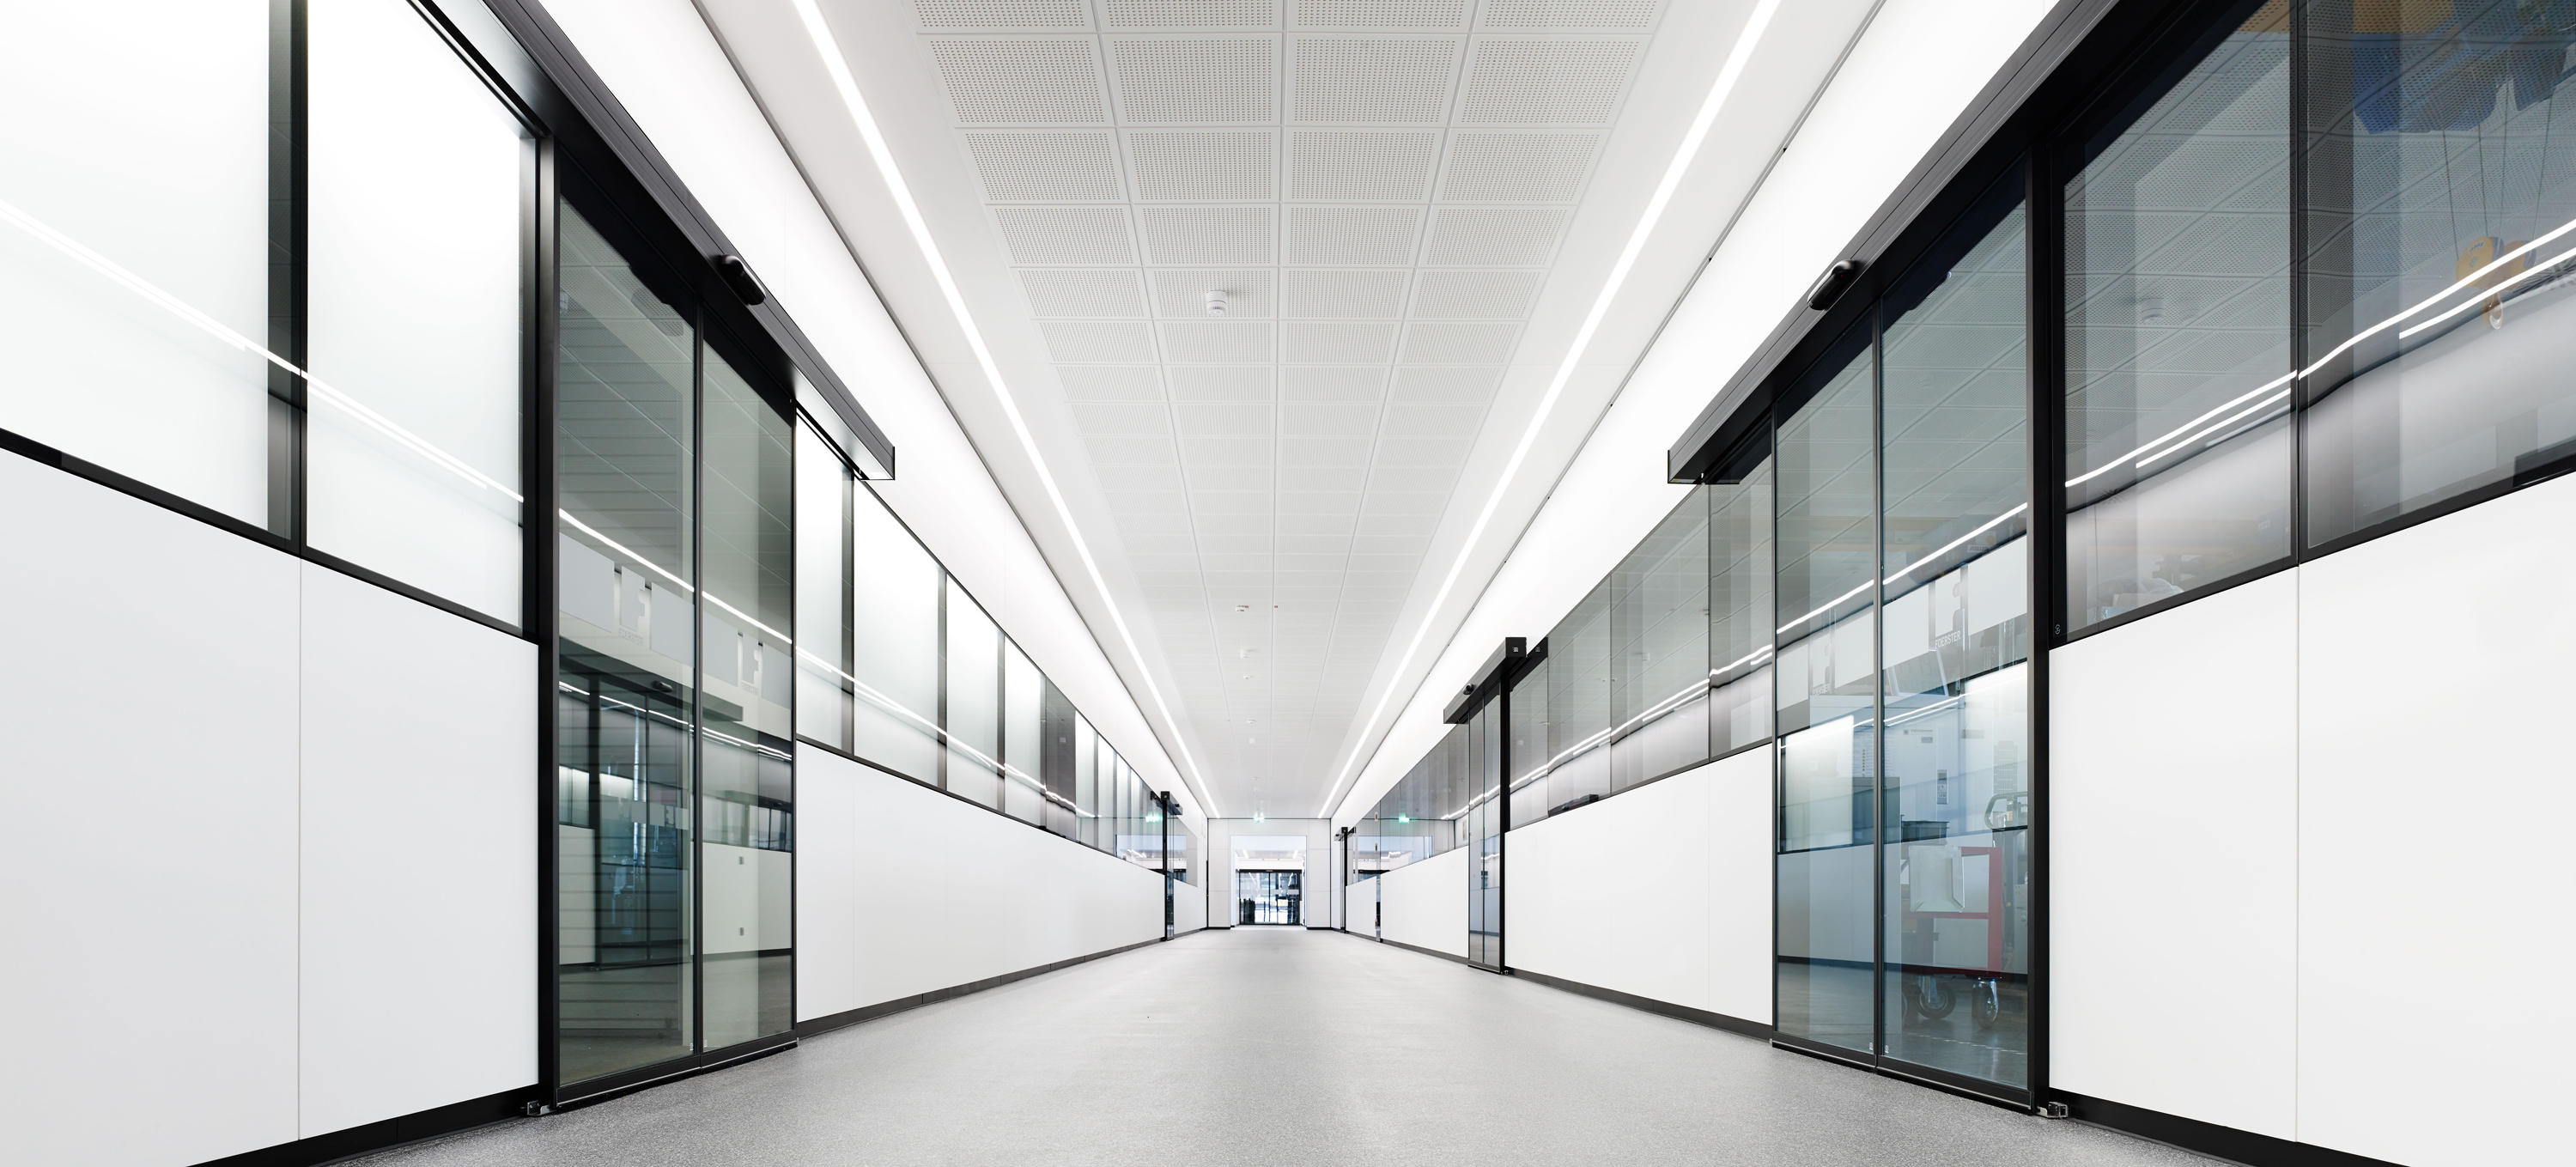 Structural Glazing By INTEK | Sound Absorbing Architectural Systems ...